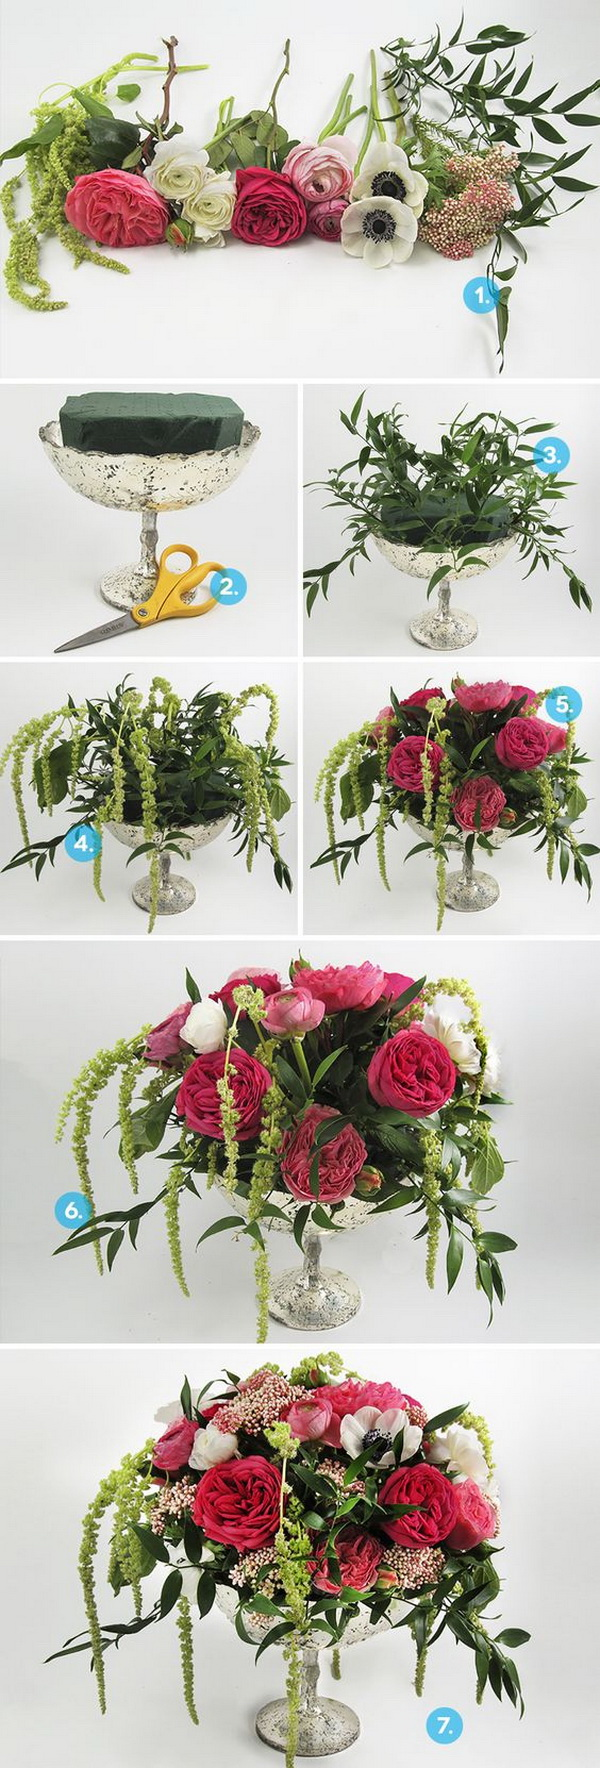 DIY Anemone Wedding Centerpiece. Perfectly delightful anemone centerpiece for you wedding!